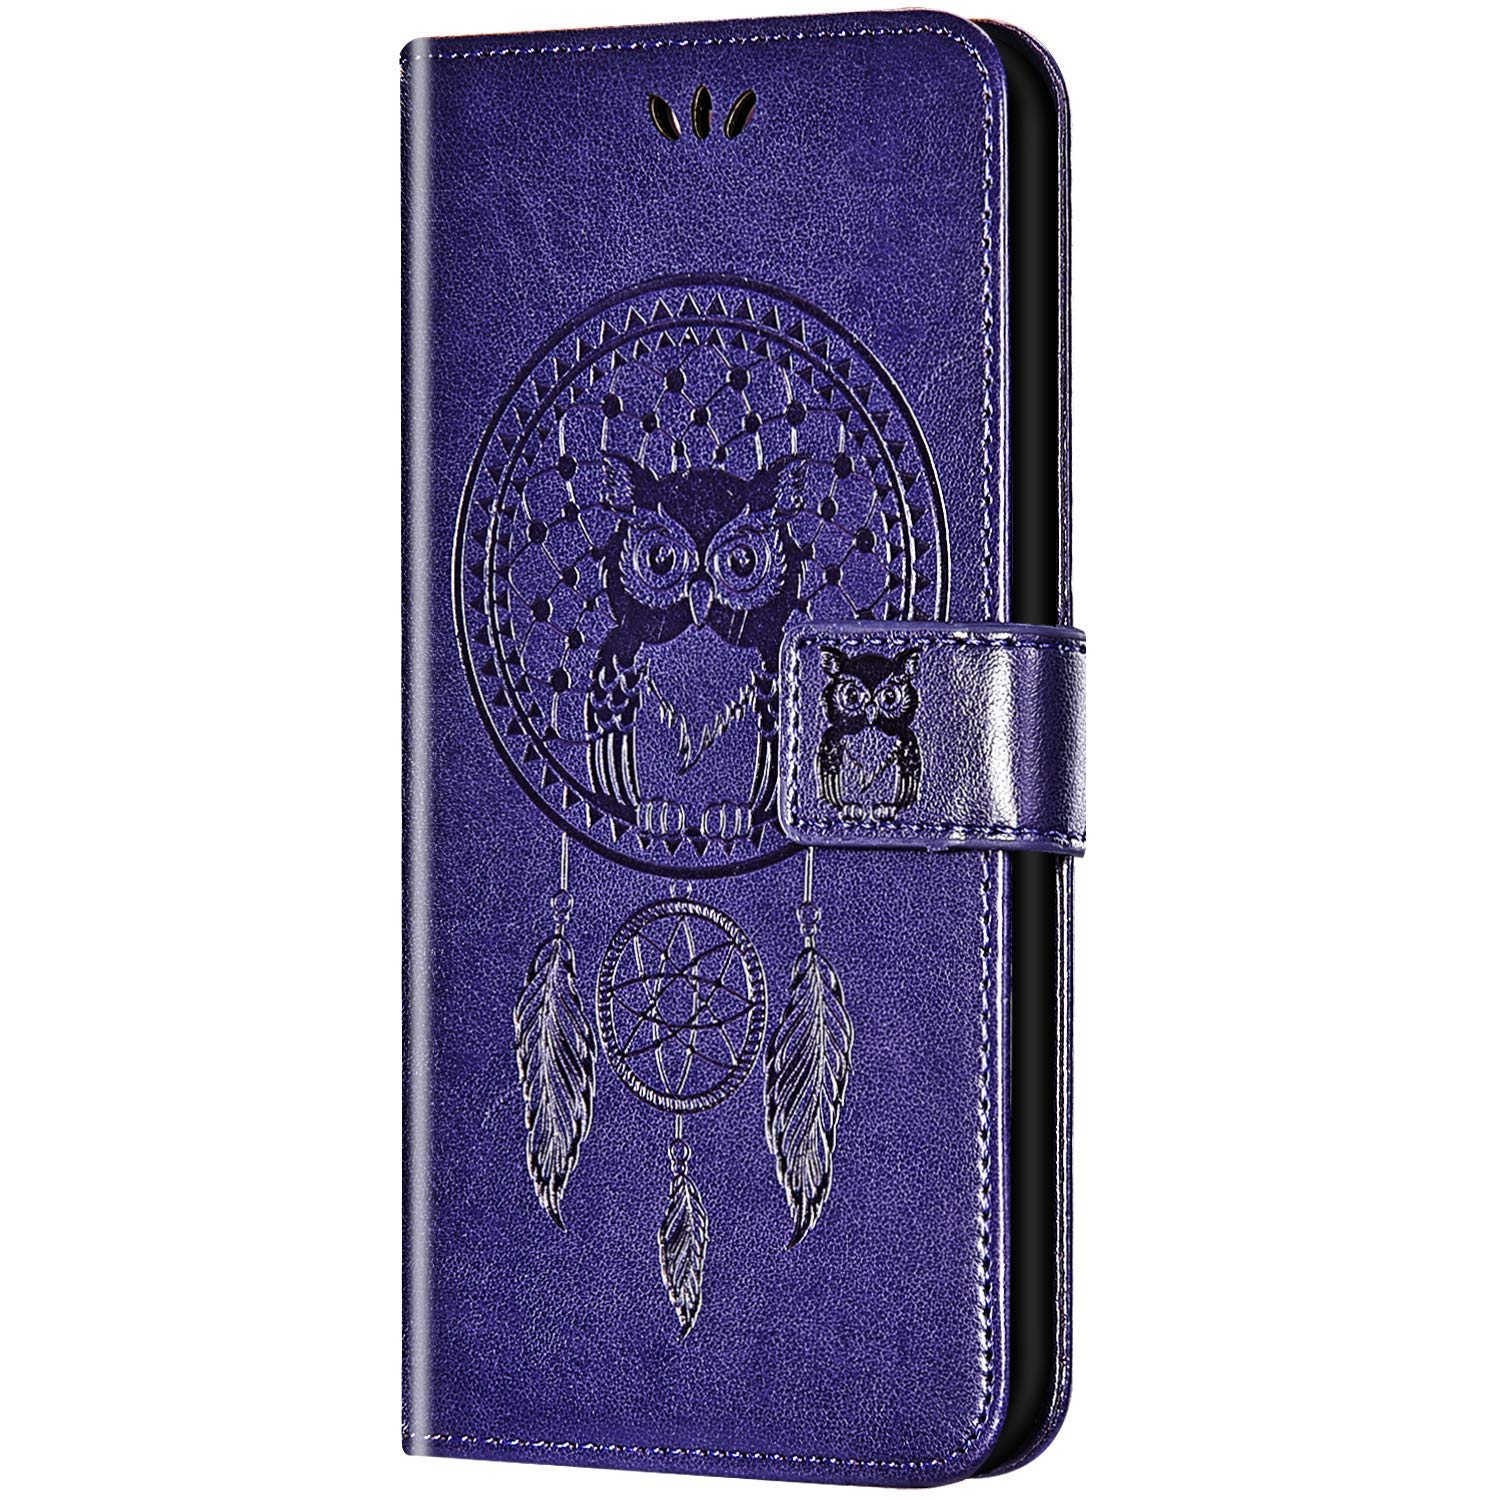 Case for Galaxy A6 2018 Flip Case Ultra Slim PU Leather Wallet with Card Holder/Slot and Magnetic Closure Shockproof Cartoon Animal Owl Embossed Protective Cover for Galaxy A6 2018,Purple by ikasus